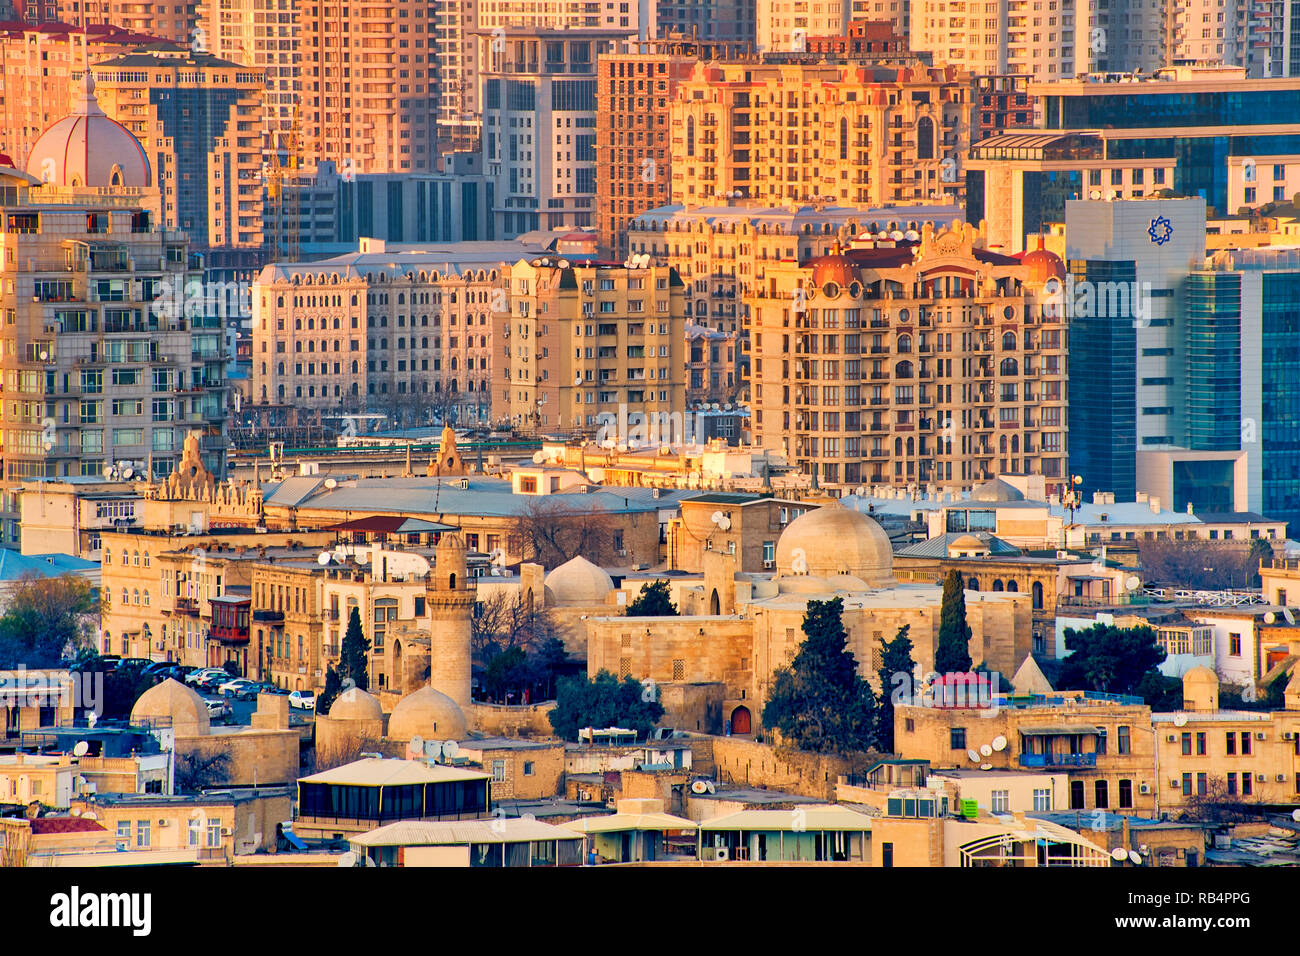 View of Baku, Azerbaijan - Stock Image